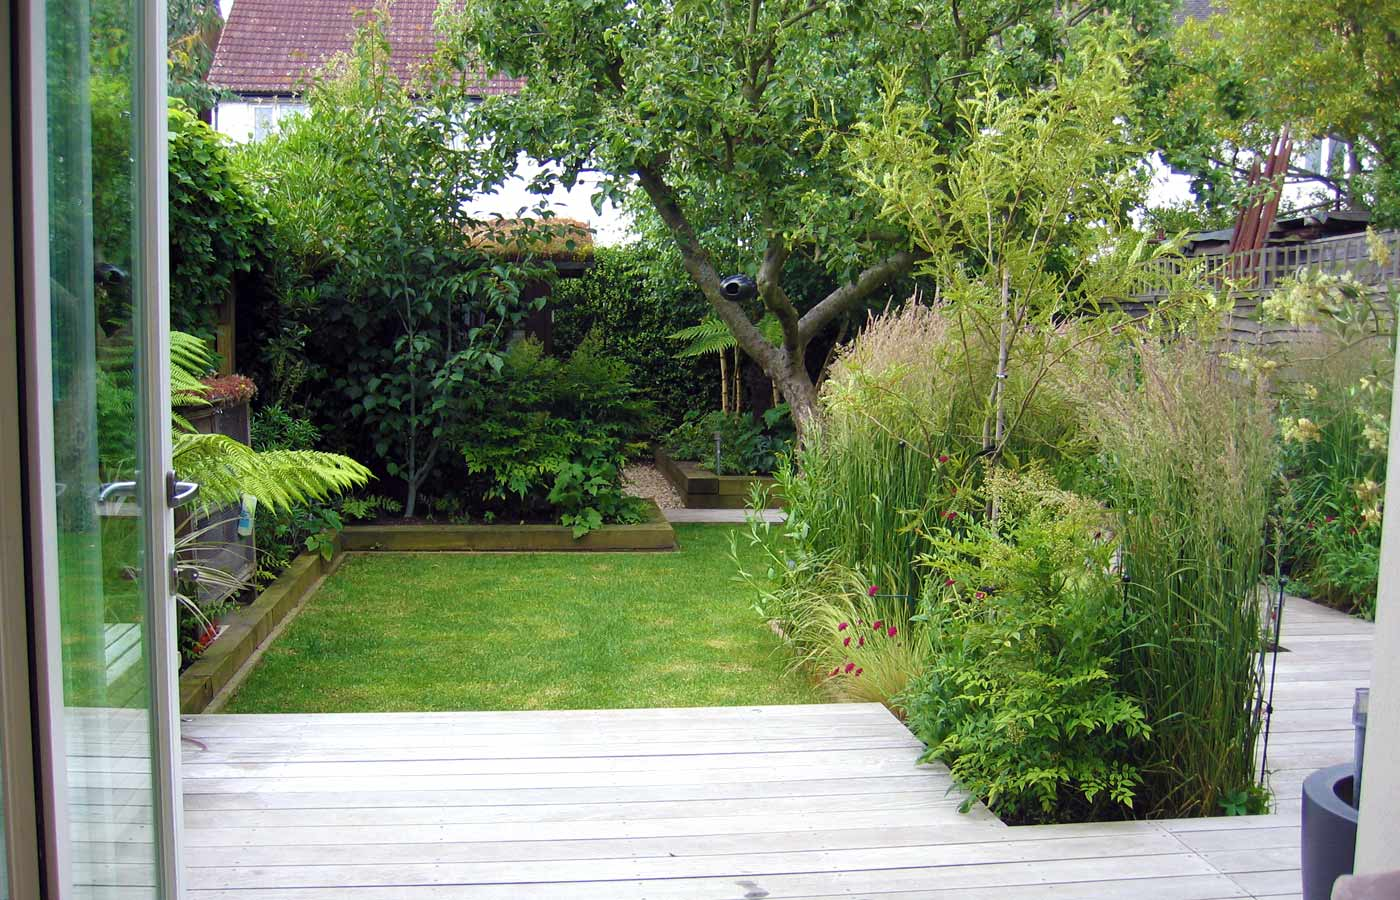 Garden design for small garden with decking for Garden designs for small gardens uk